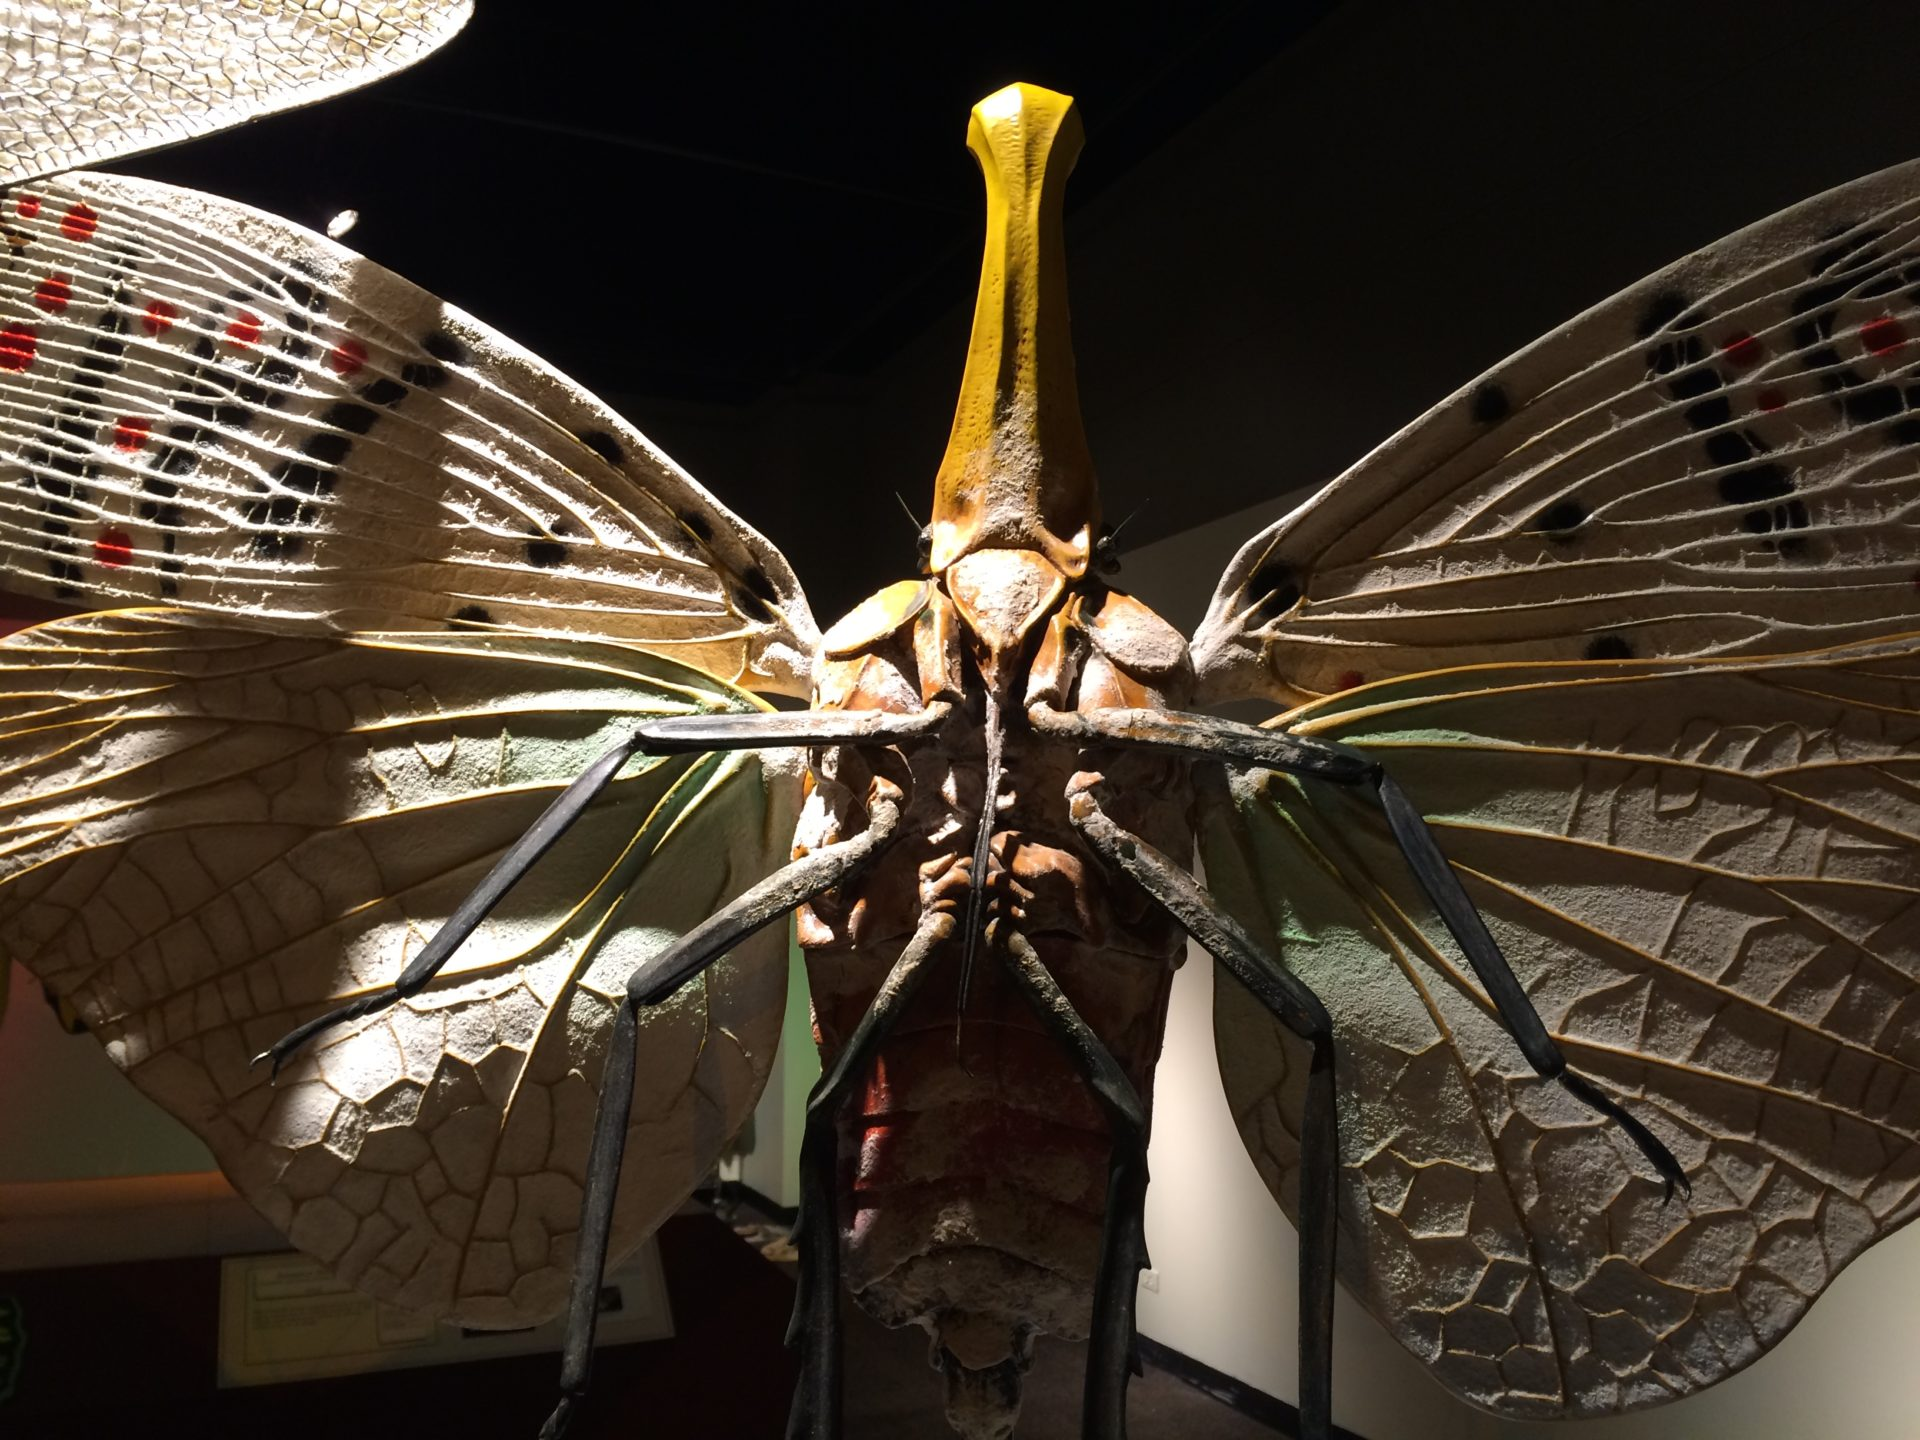 Closeup of LaternFly Sculpture showing wing details